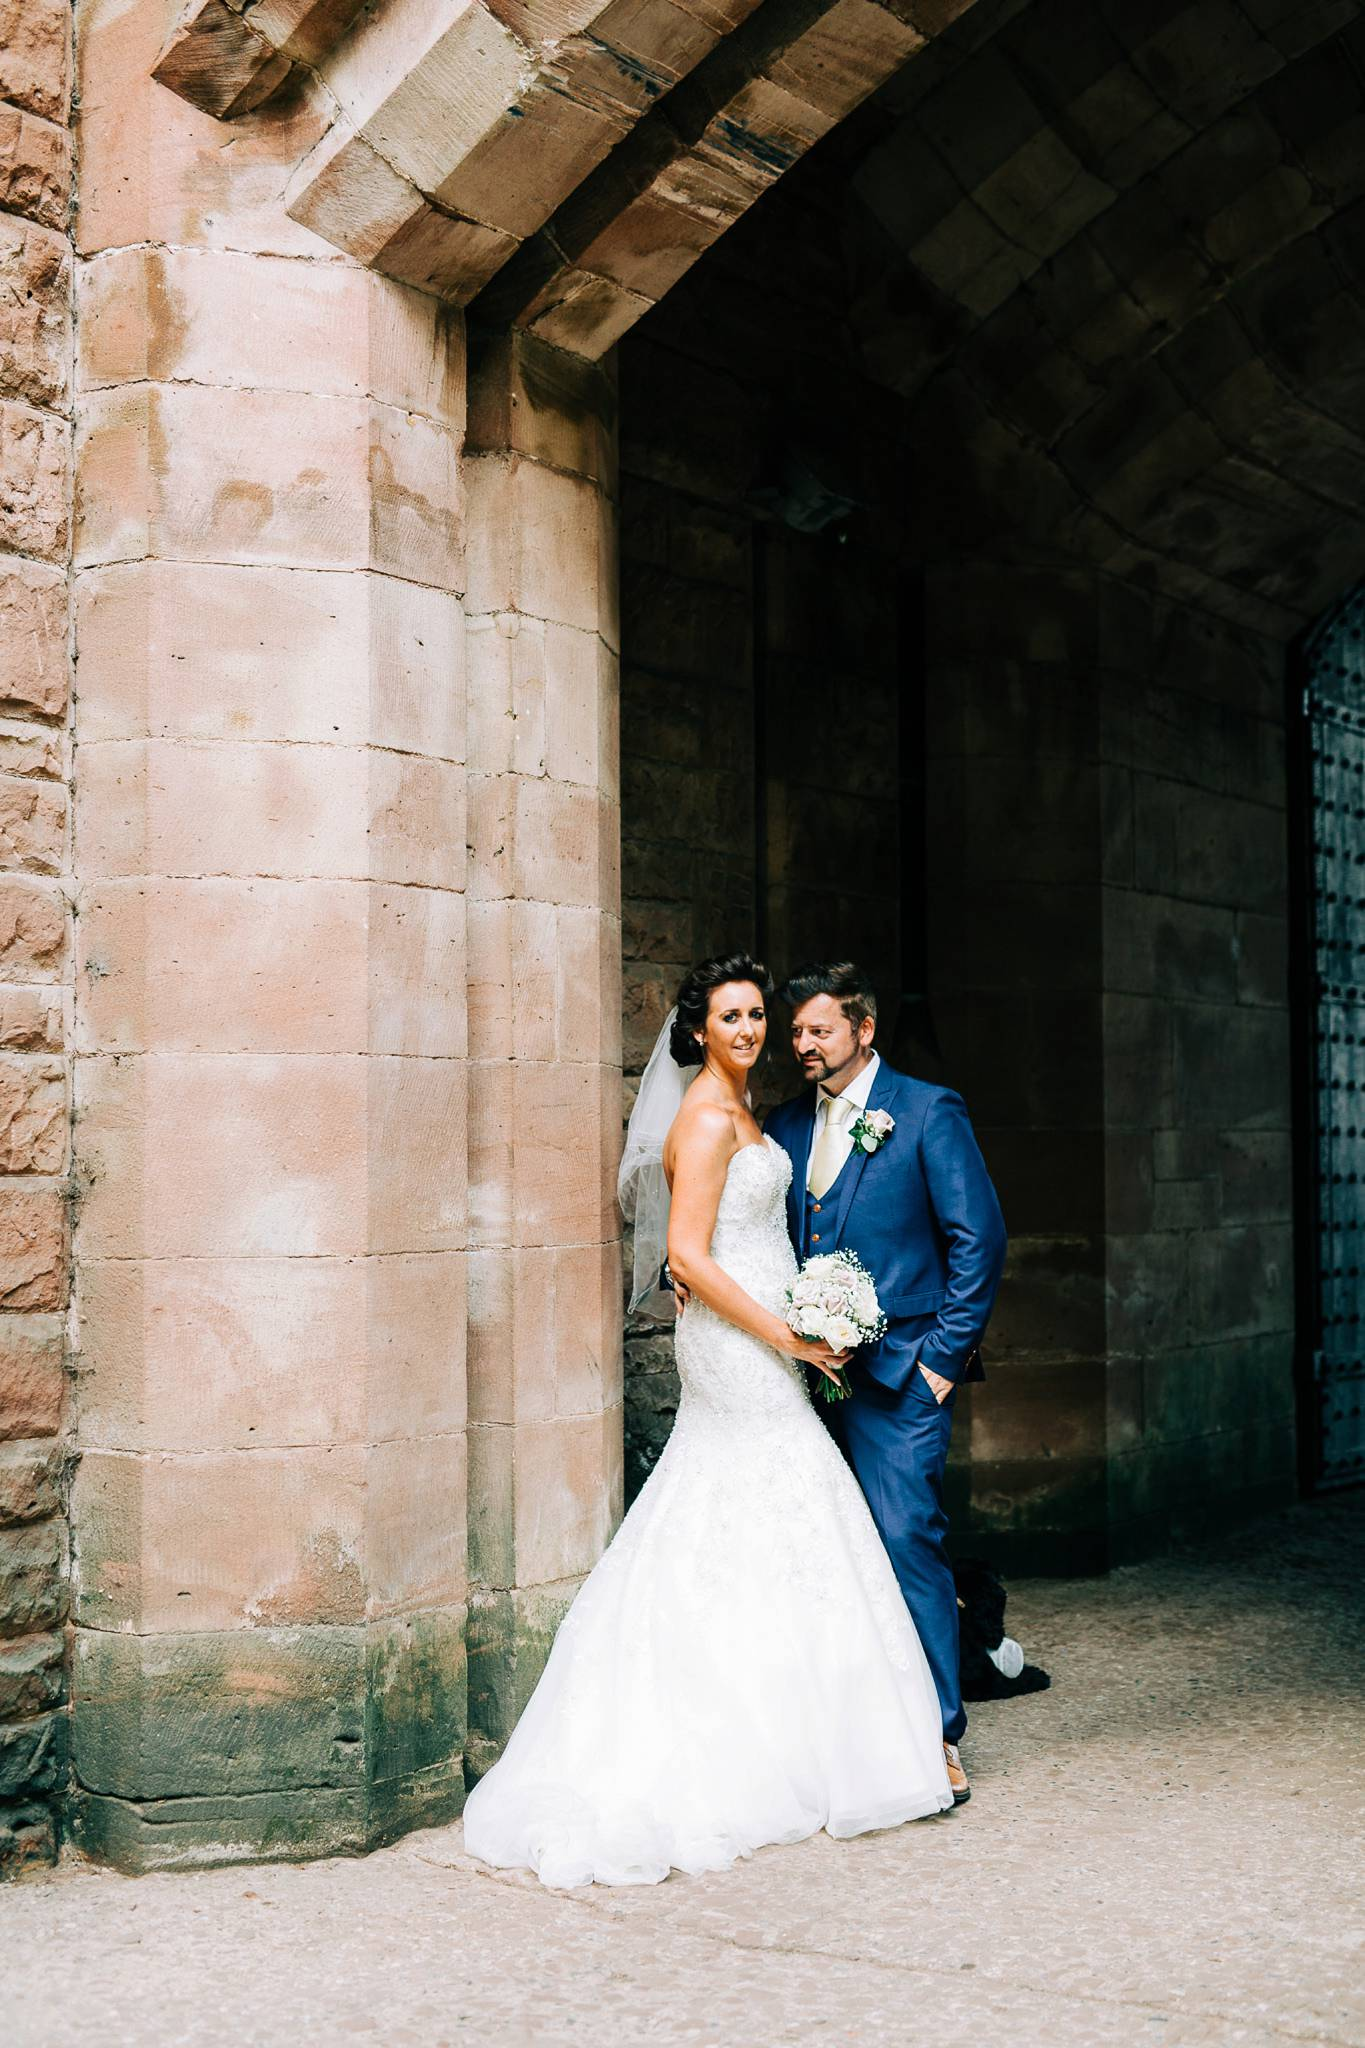 Natural wedding photography Manchester - Clare Robinson Photography_0021.jpg